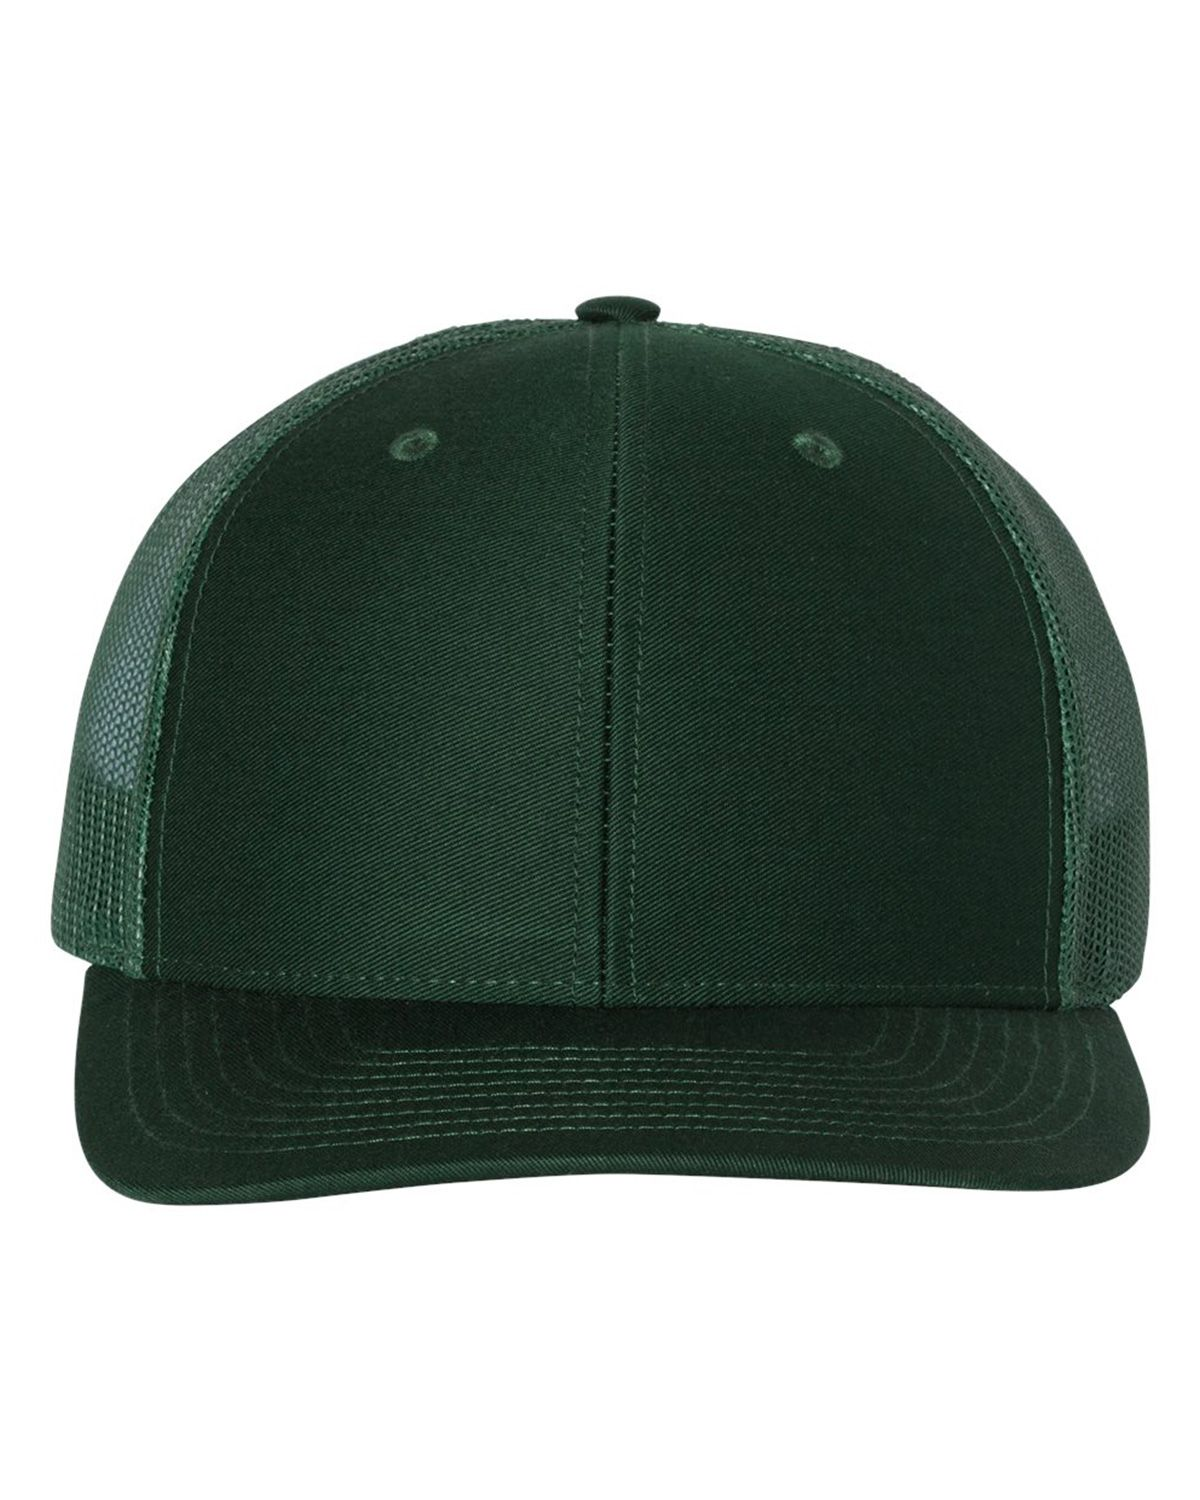 91f29becbb0d9 Richardson 112 Snapback Trucker Cap - Free Shipping Available